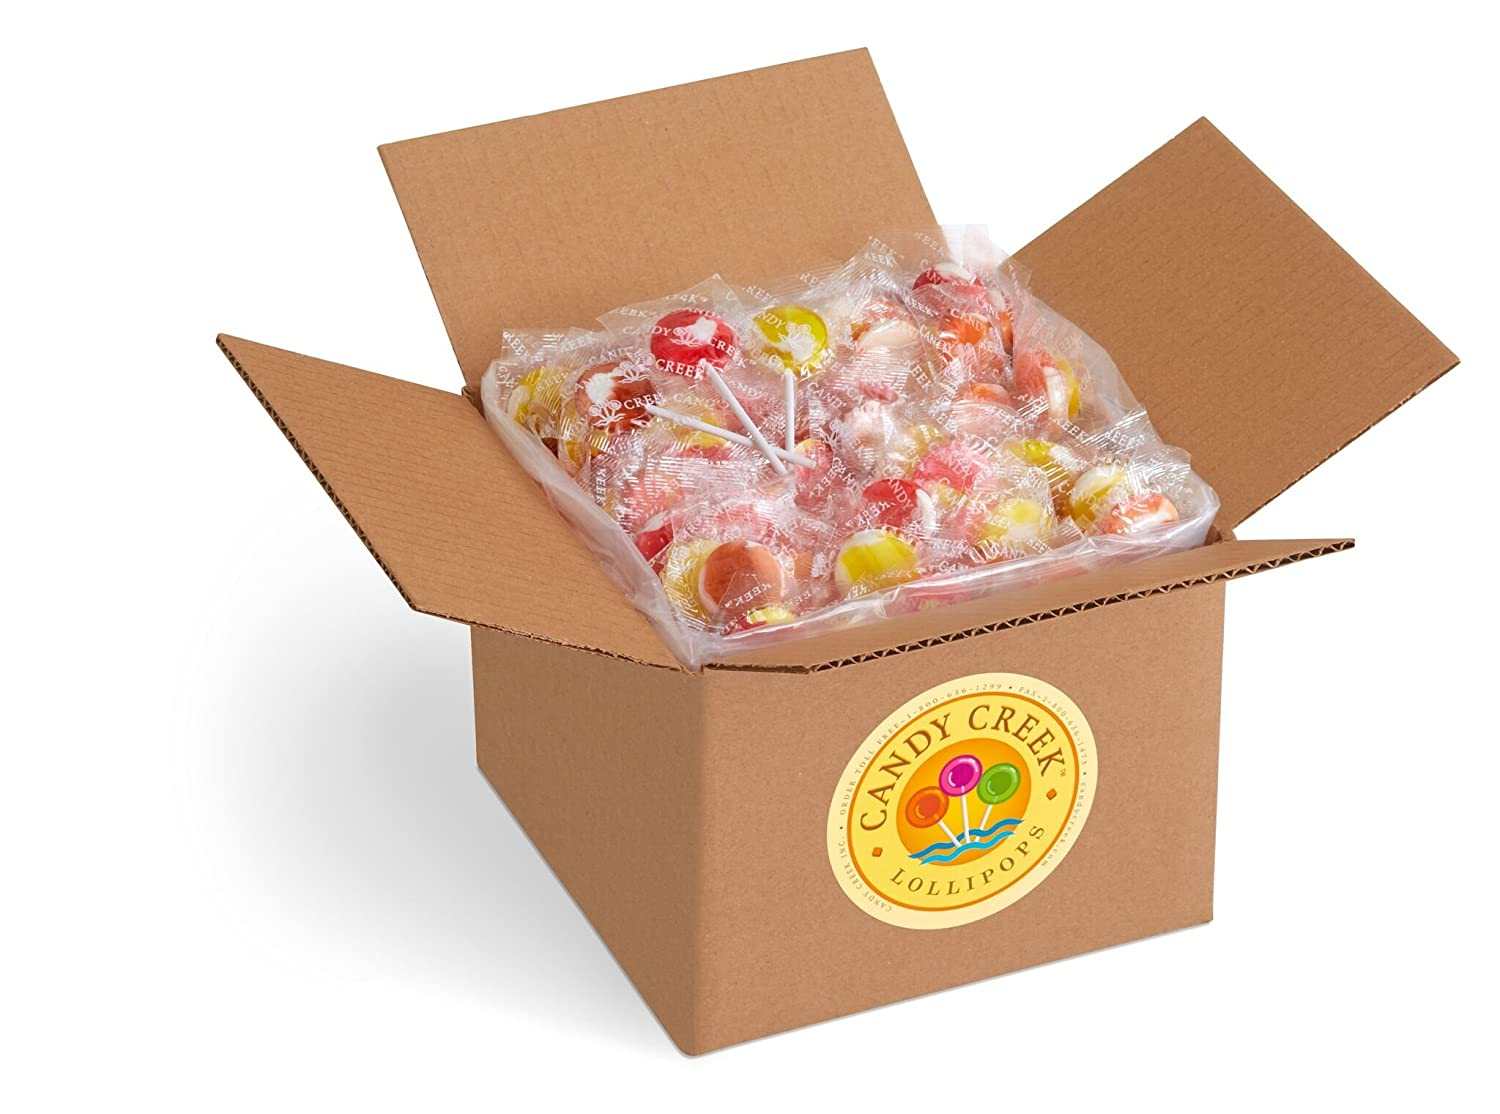 Soda Shop Lollipops by Candy Creek, Bulk 5 Pound Carton, Rootbeer Float, Cherry Vanilla, Strawberry Banana, Orange Creamsicle, and Pineapple Coconut